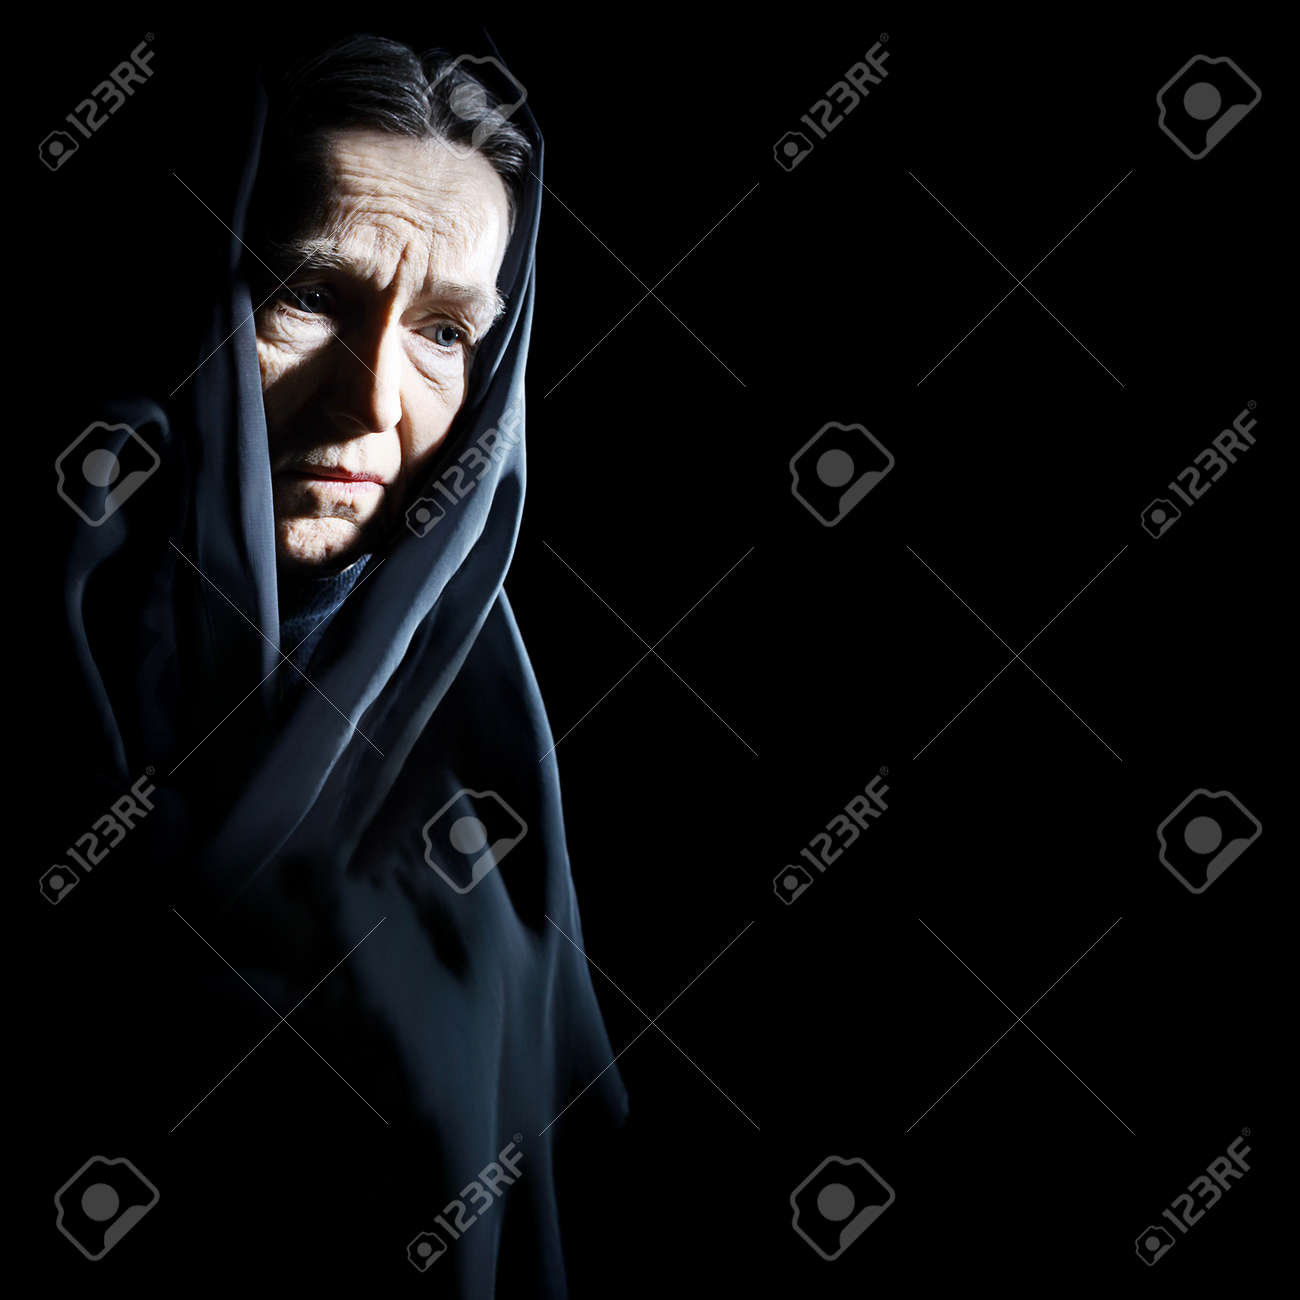 Sad old woman Senior woman in sorrow depressive portrait with wrinkled face Standard-Bild - 29798029